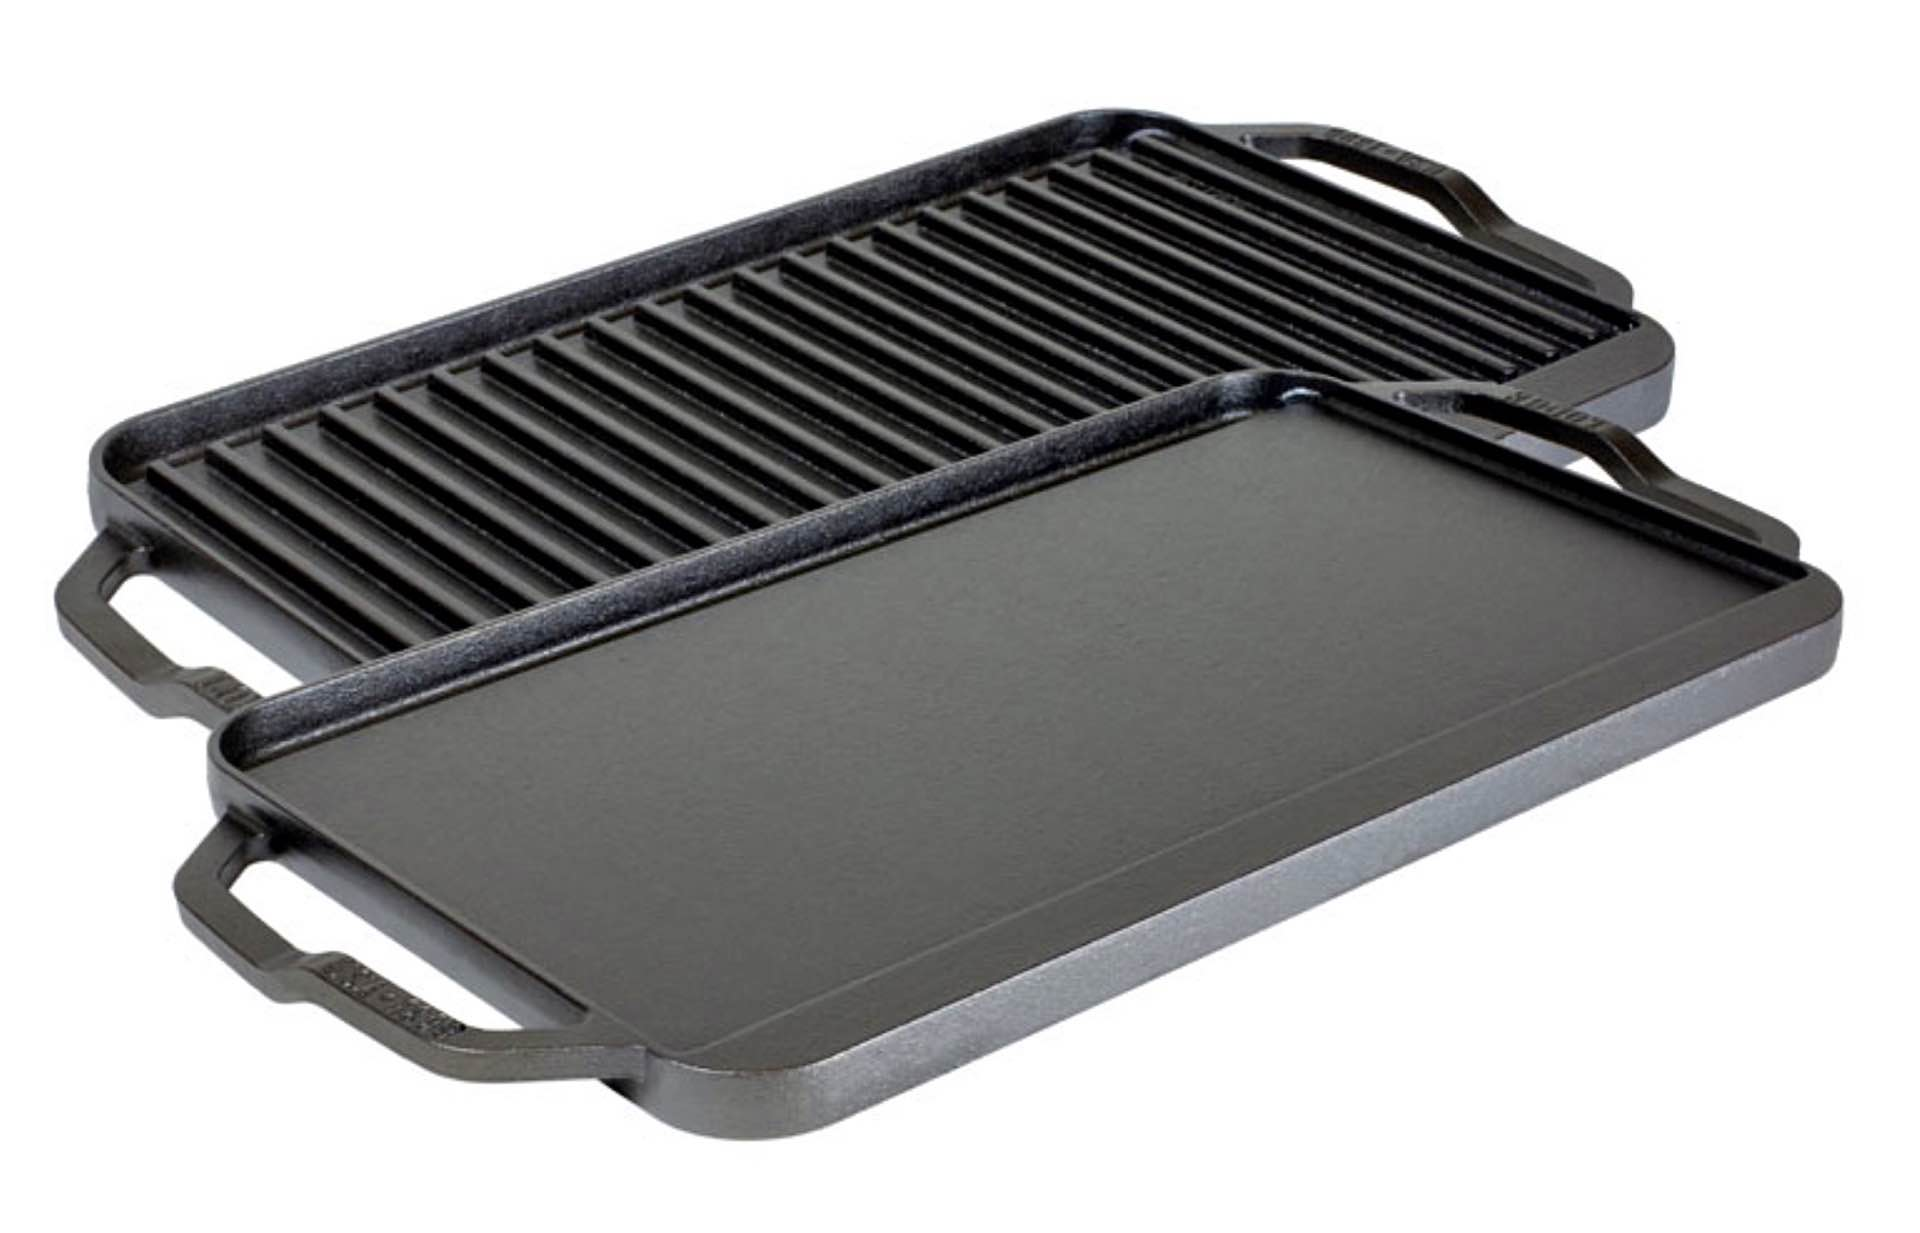 lodge-chef-collection-reversible-cast-iron-grill-griddle